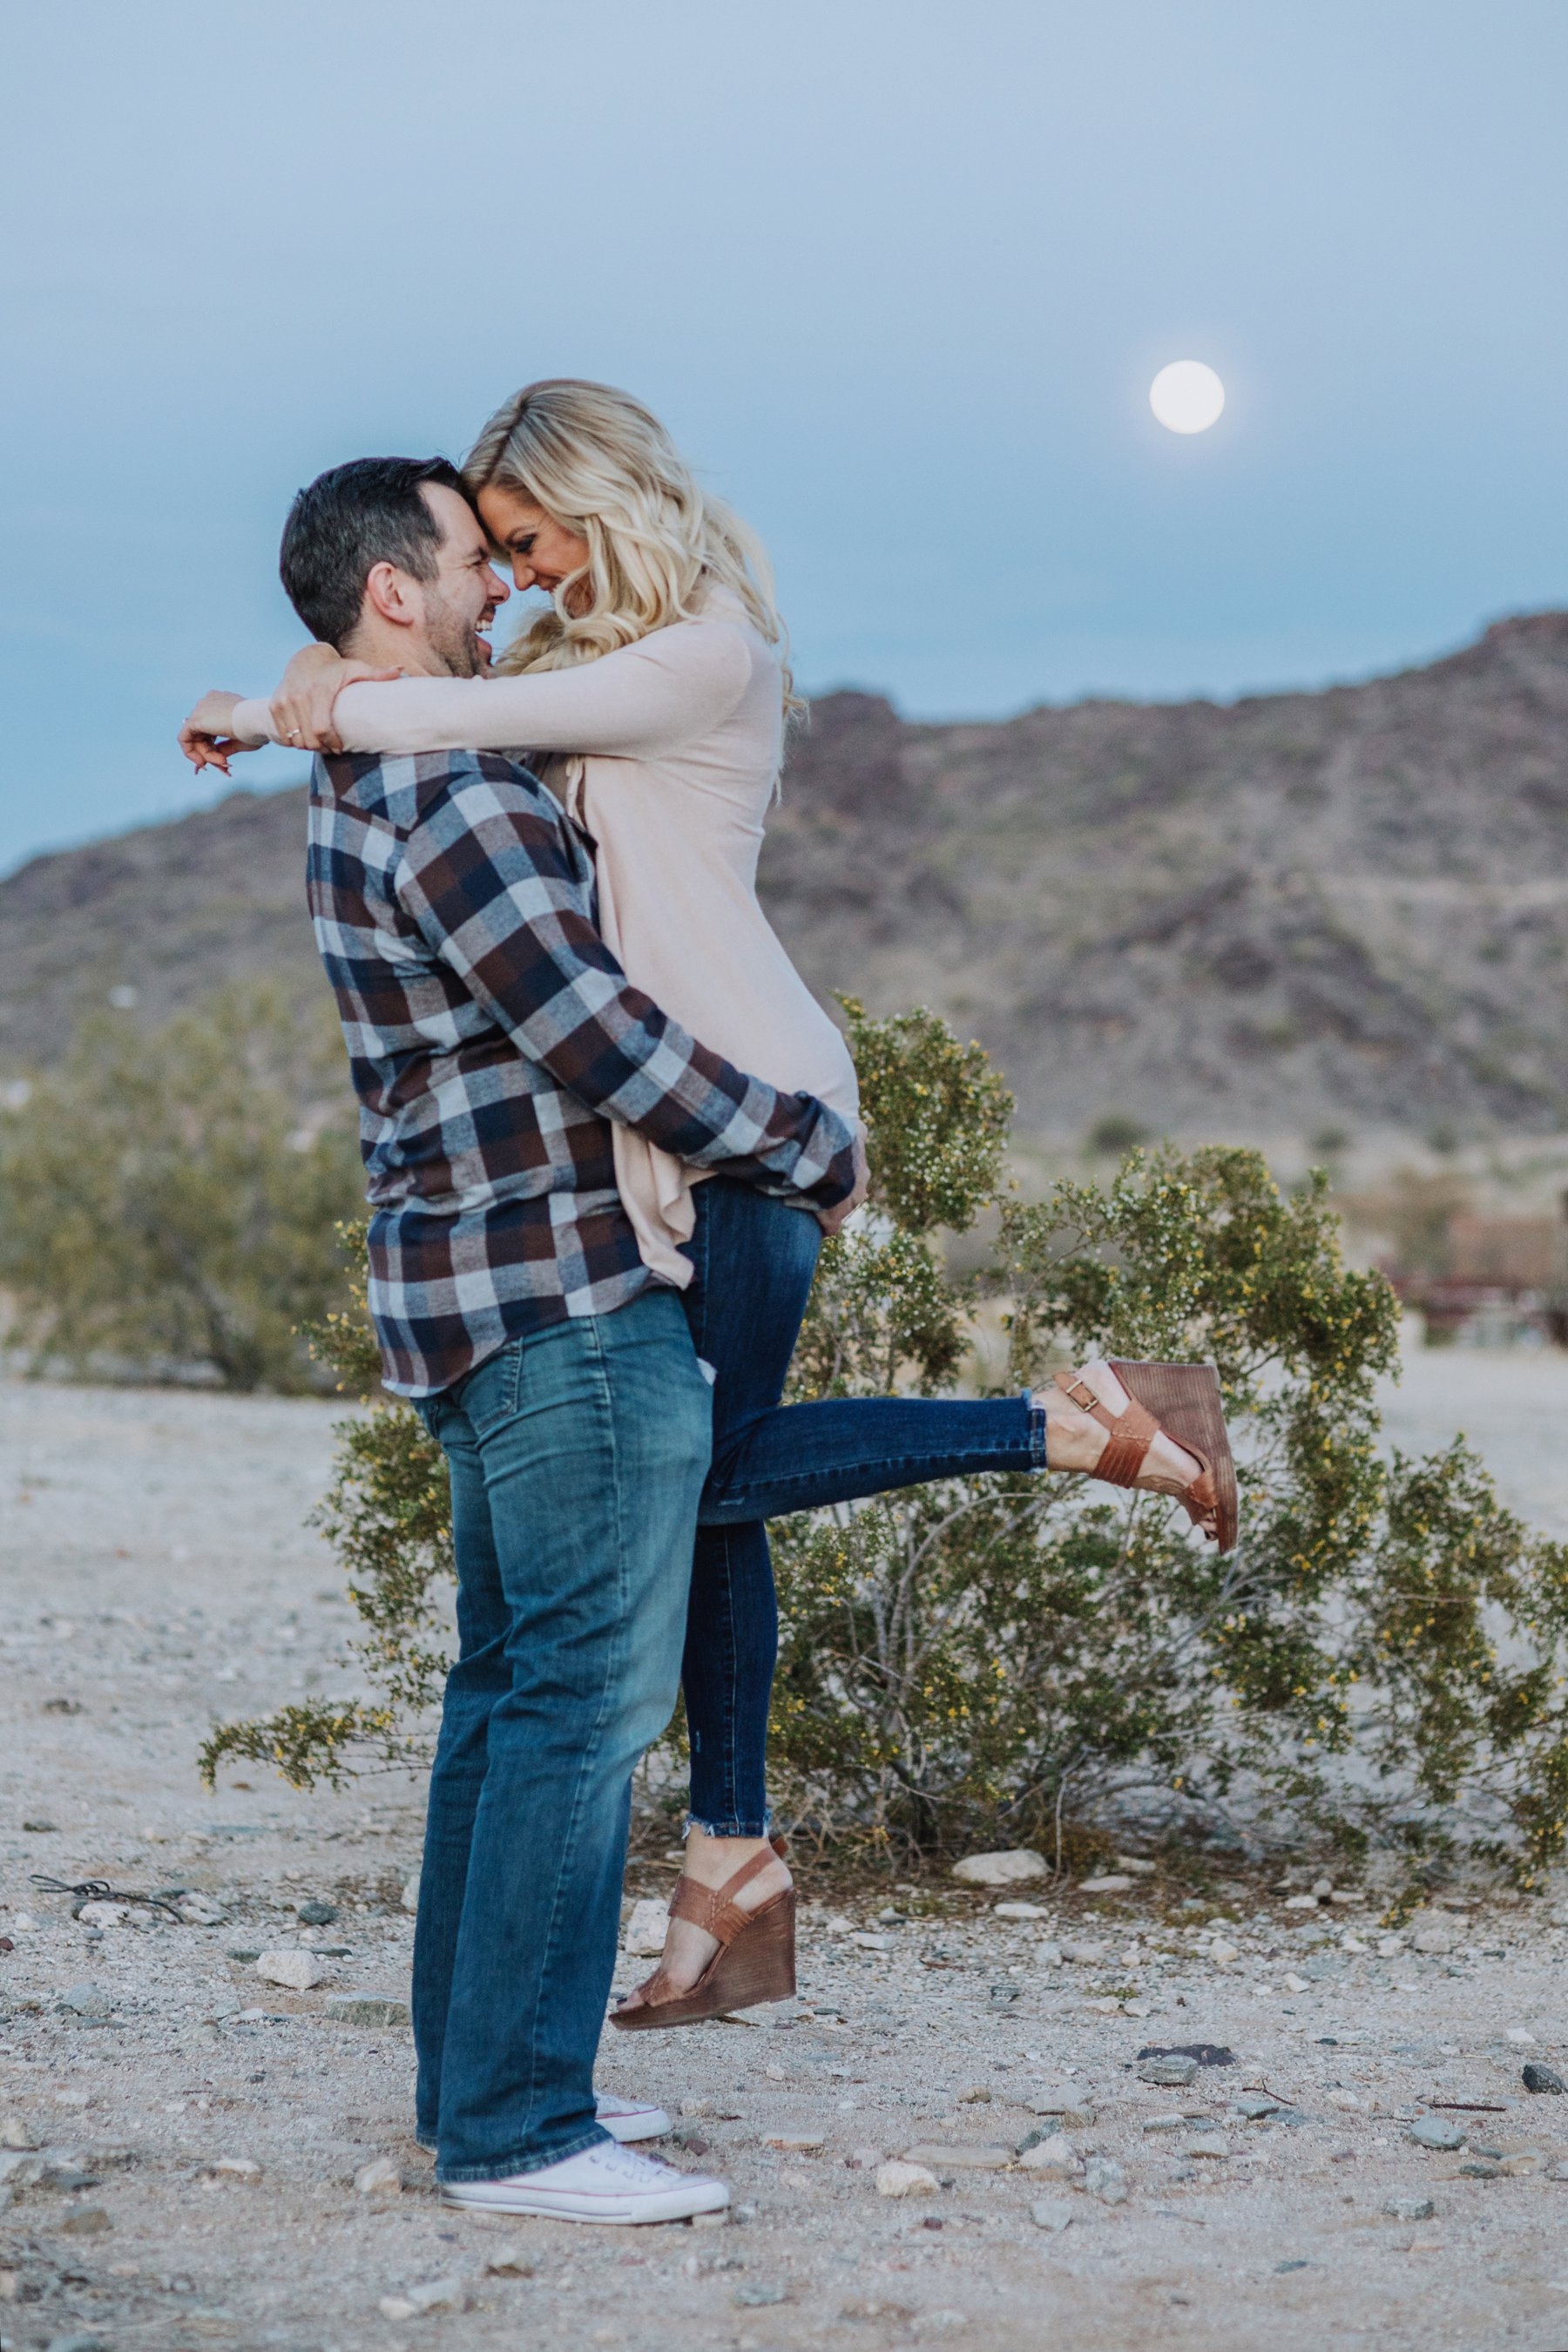 Phoenix Arizona Scorpion Gulch desert engagement session, Melayne + Drew by Diana Elizabeth Photography - www.dianaelizabeth.com // evening with the moon in the desert